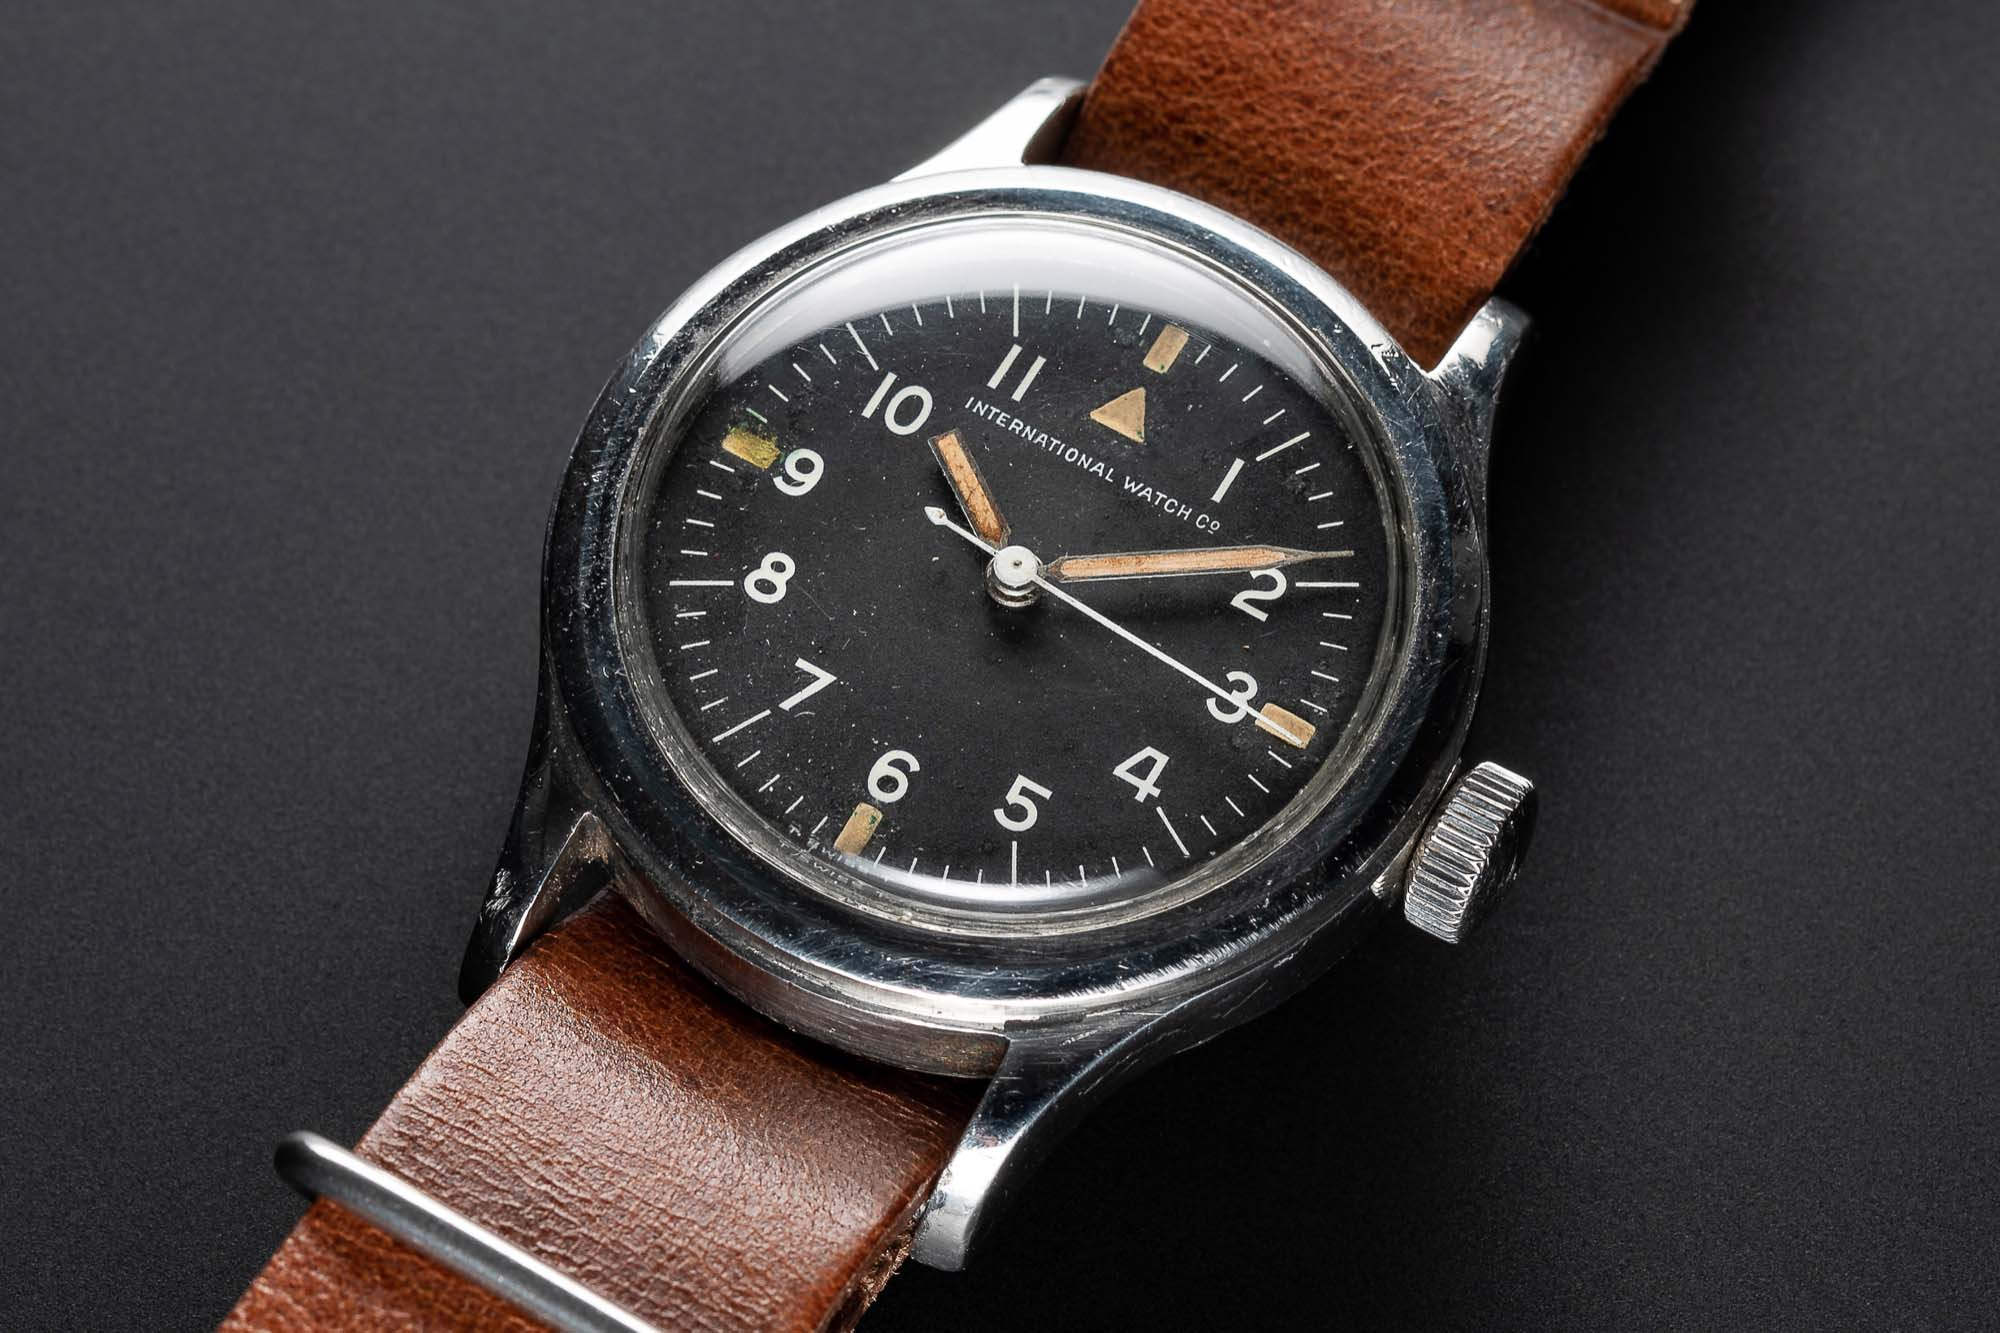 Lot 135 - A VERY RARE GENTLEMAN'S STAINLESS STEEL SOUTH AFRICAN AIR FORCE (SAAF) IWC MARK 11 MILITARY PILOTS